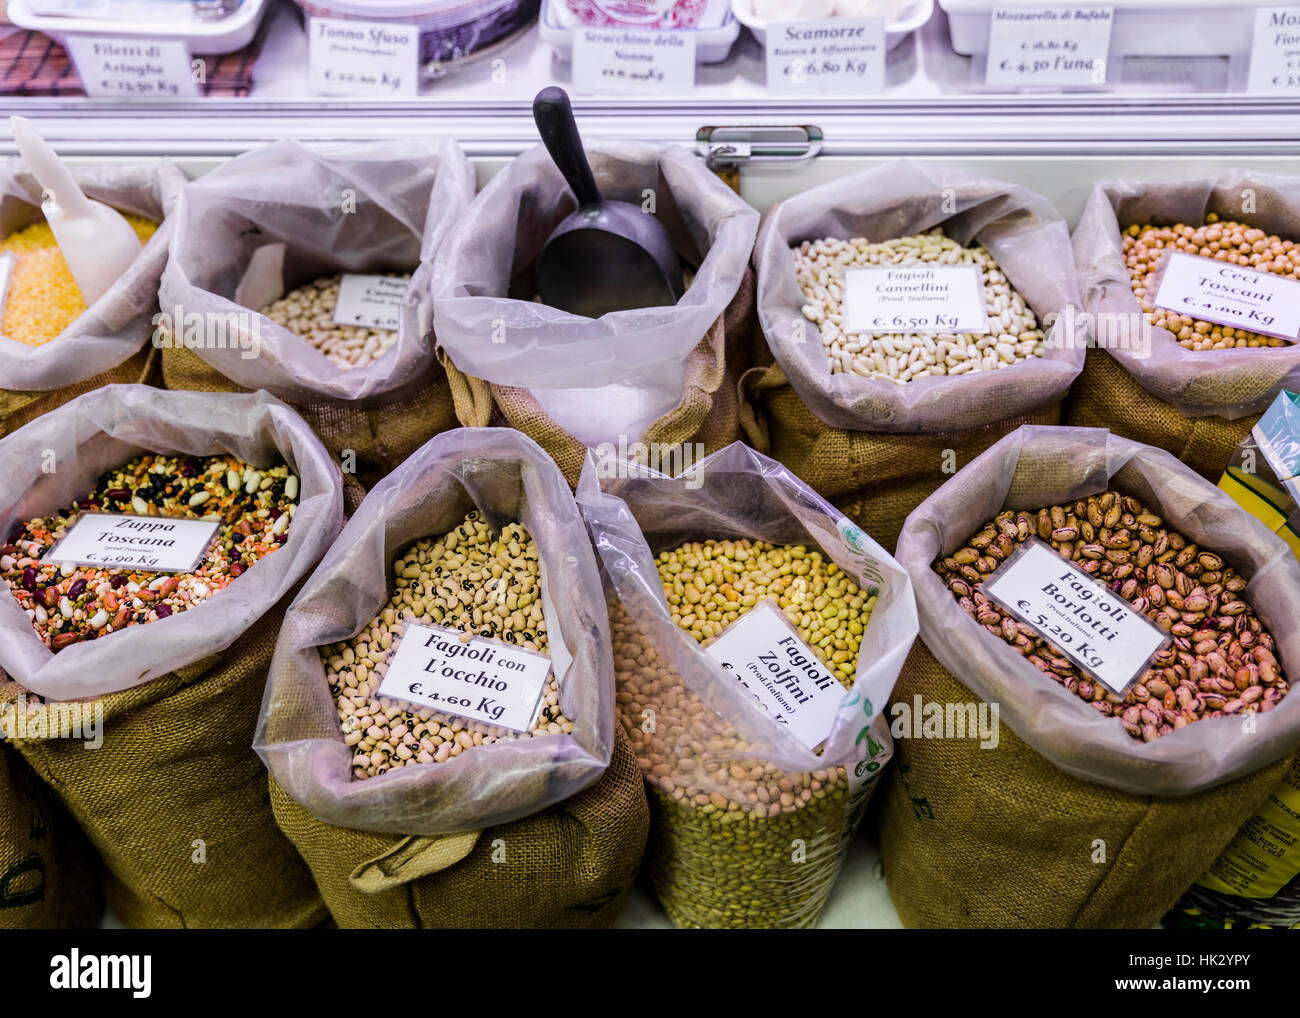 Sacks of beans for sale in Mercato Centrale, Florence, Italy. - Stock Image